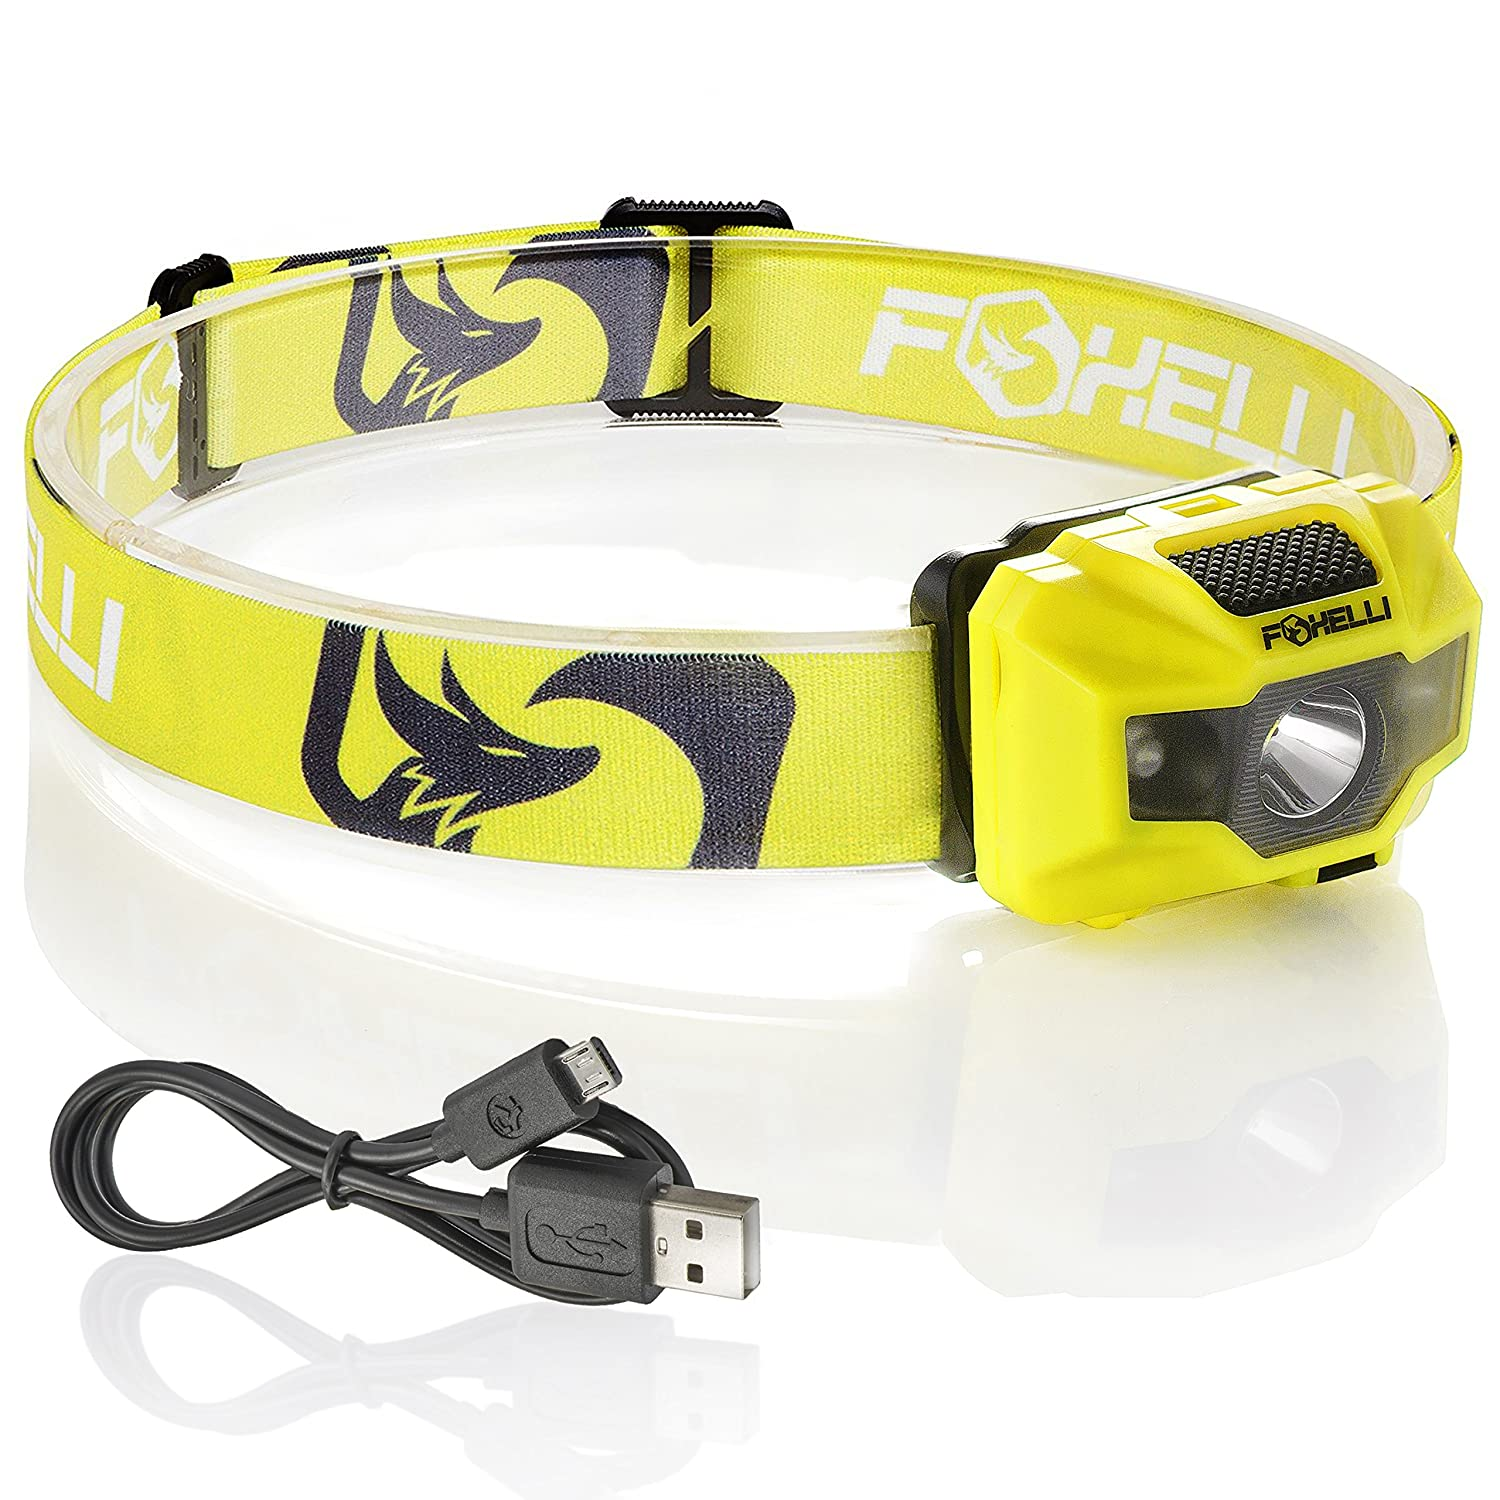 Foxelli USB Rechargeable Headlamp Flashlight 180 Lumen up to 40 Hours of Constant Light on a Single Charge Bright White Led Red Light Compact Easy to Use Lightweight Comfortable Headlight